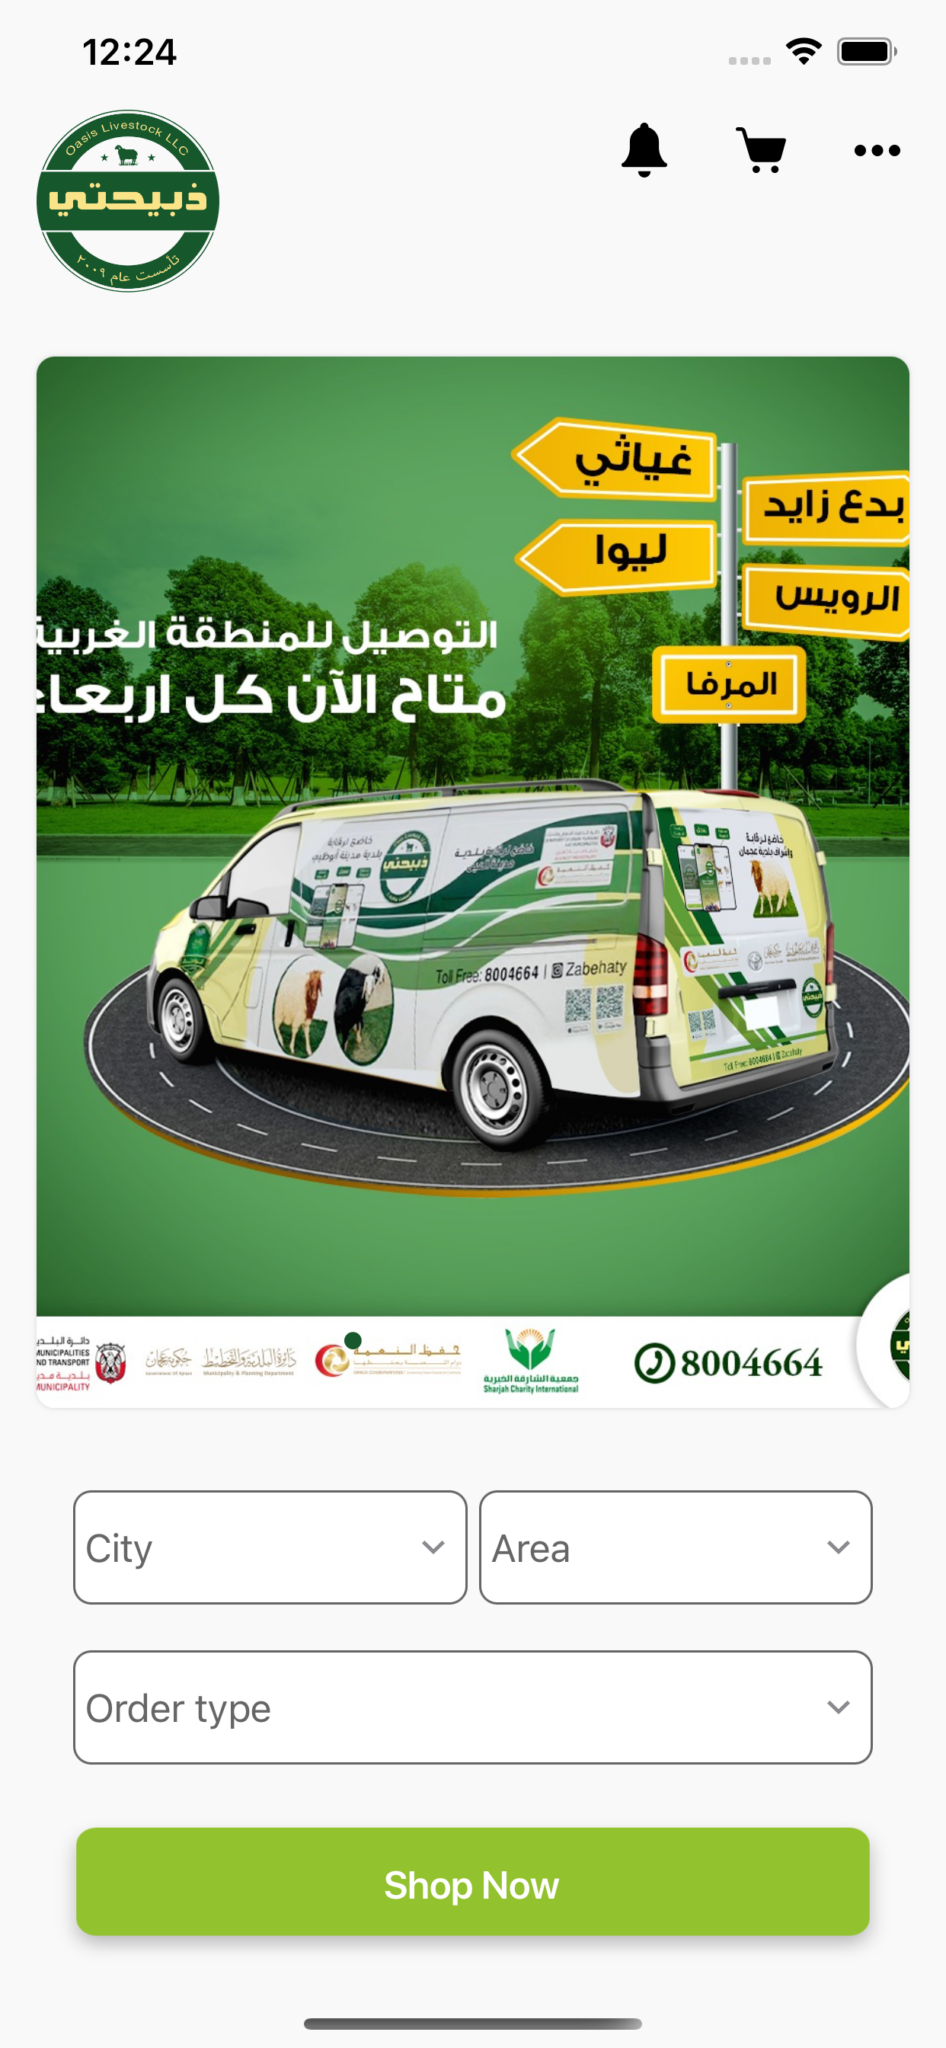 2. Get to know our latest offers & choose your Emirate & order type